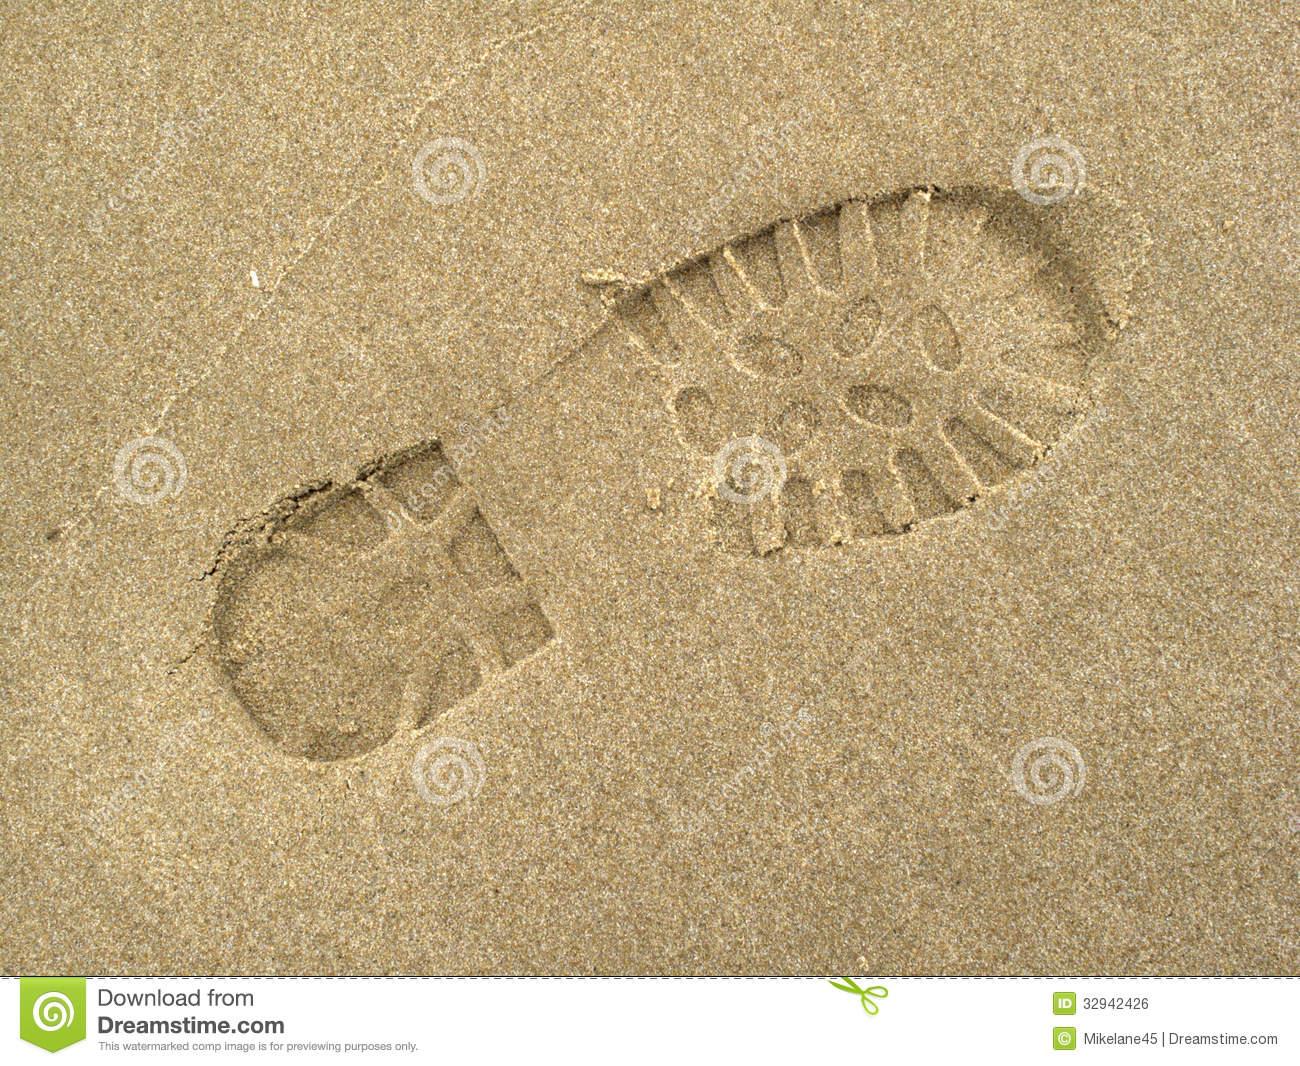 Boot Footprints In Sand Royalty Free Stock Image - Image ...